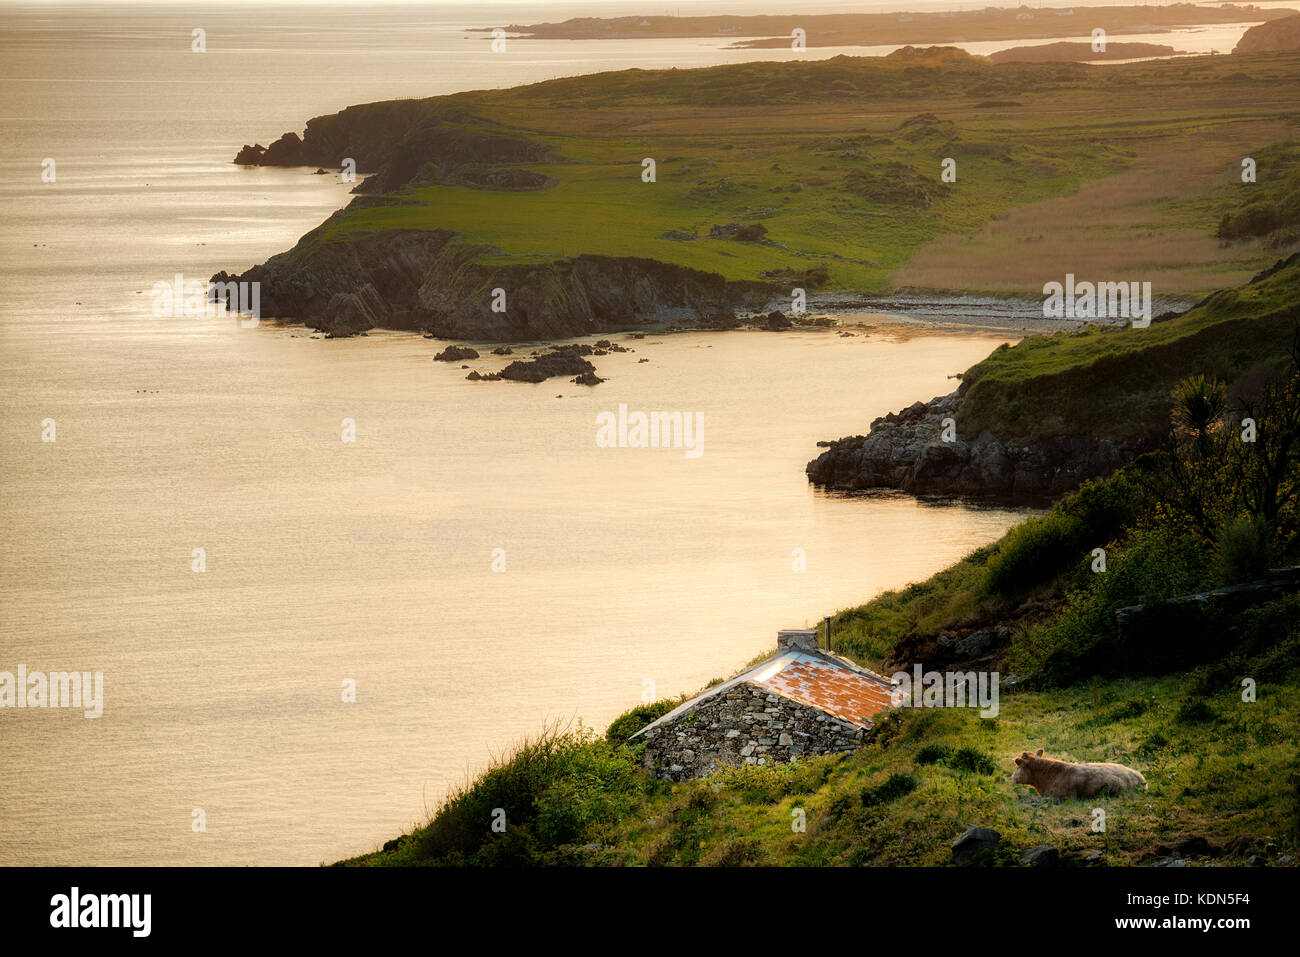 Cow, stone shack and coastline from Sky Road with Dolphine Beach. Near Clifden. Connemara,County Galway, Ireland - Stock Image